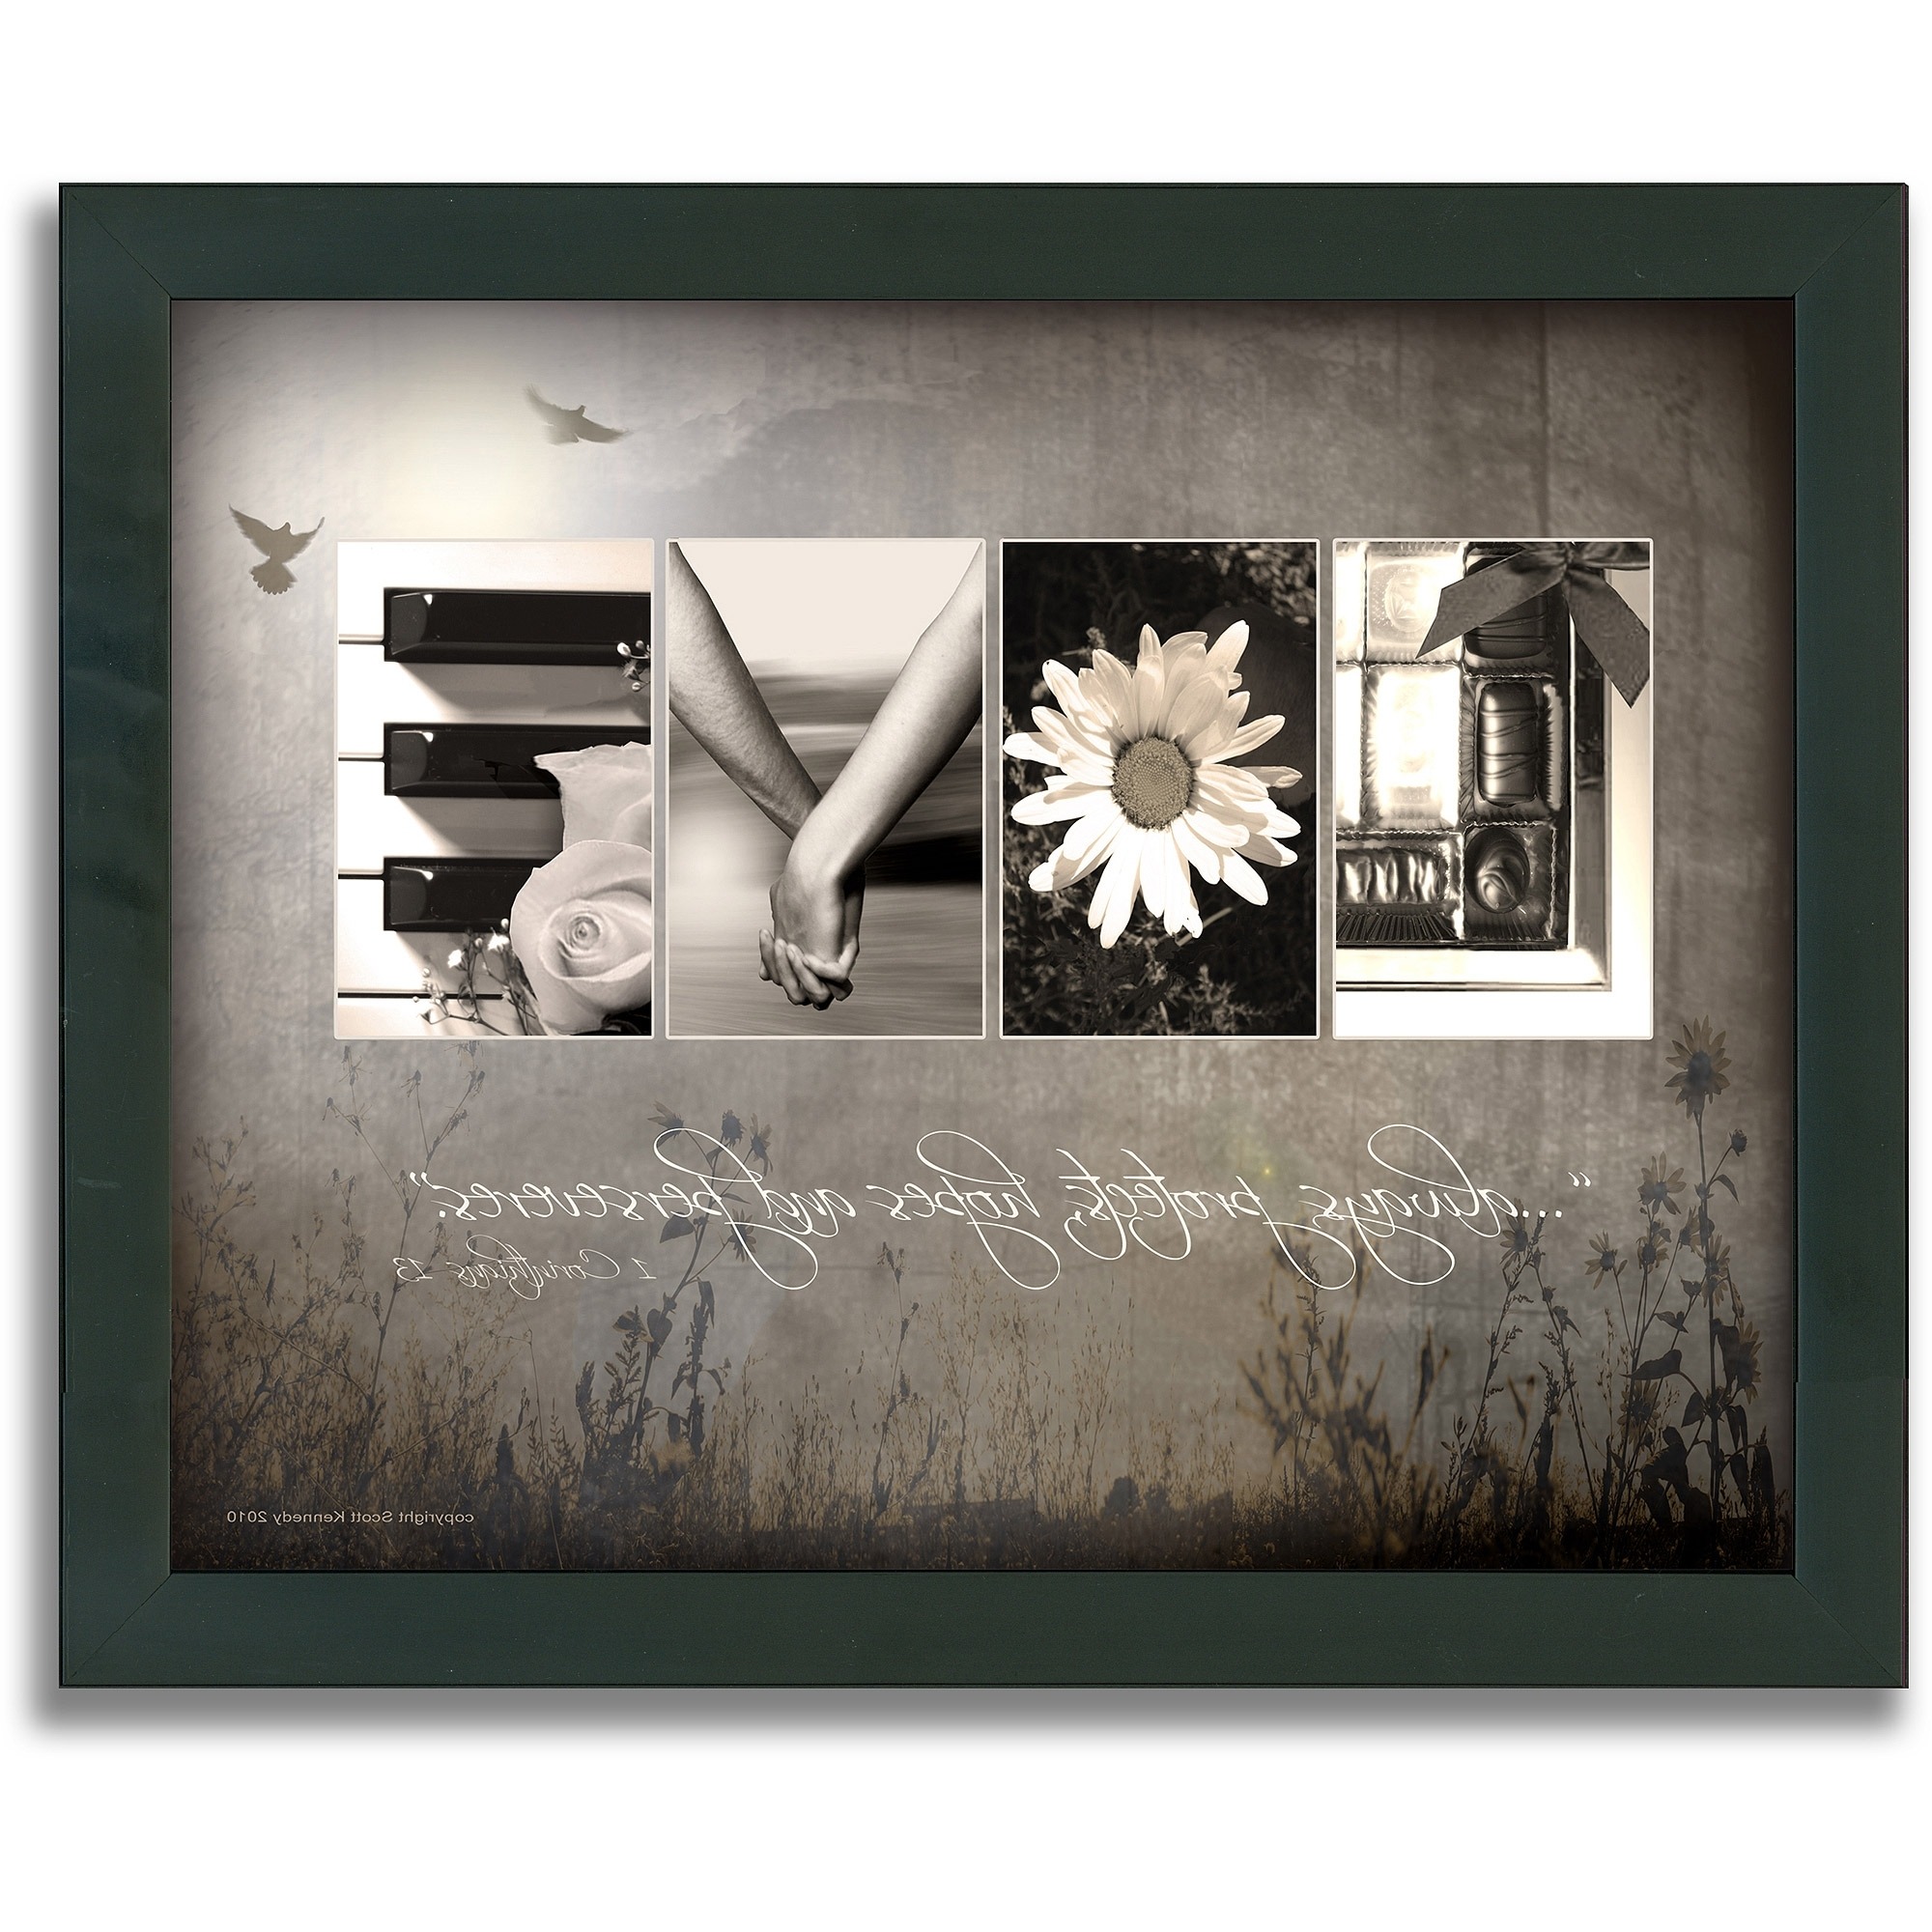 Wall Art At Walmart Within Recent Personal Prints Love Letters Framed Canvas Wall Art – Walmart (View 12 of 15)